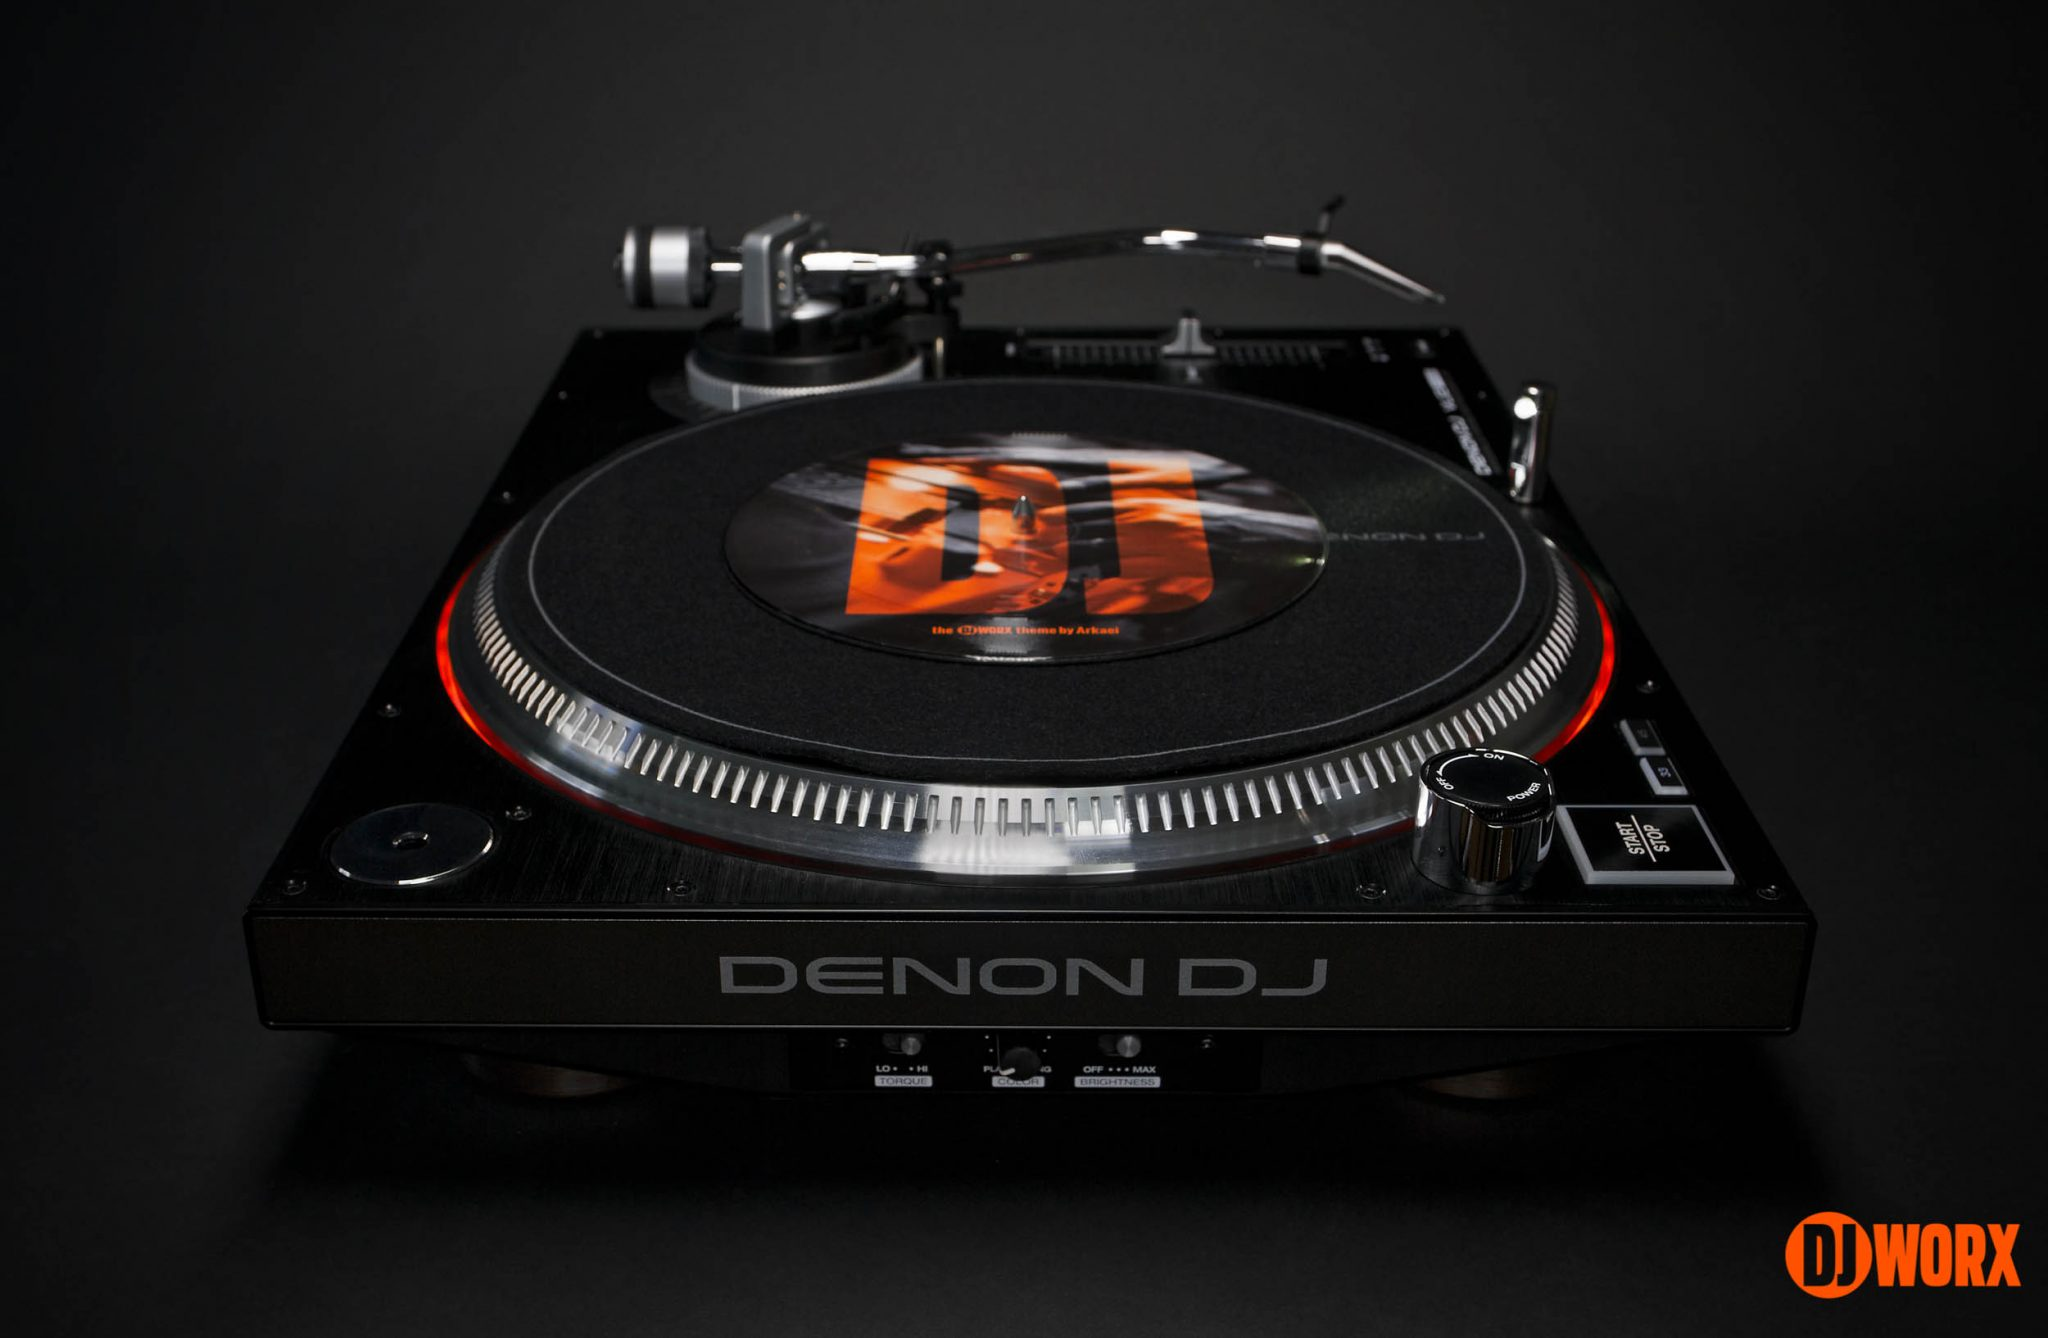 Denon DJ L12 Prime turntable review DJWORX (20)